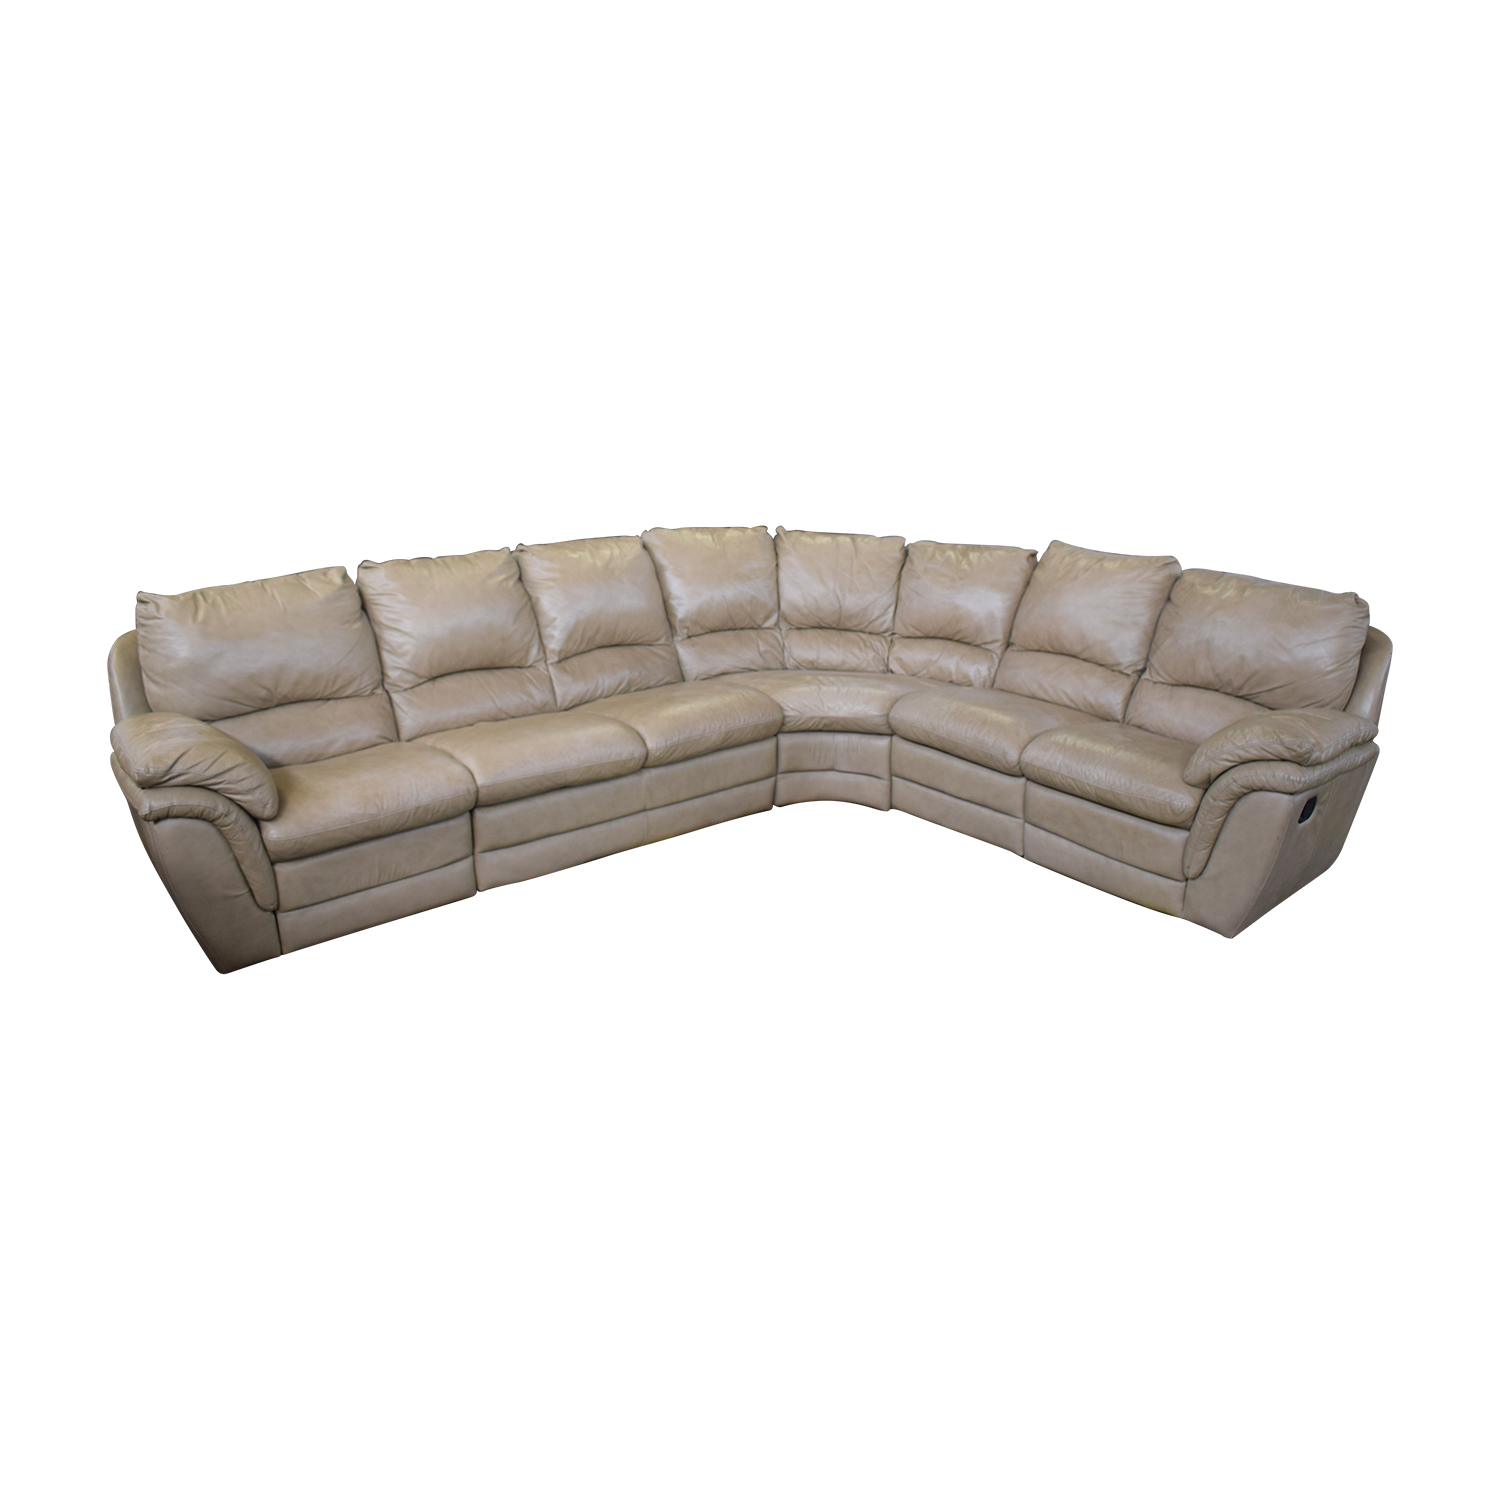 Sofa L Shape Dimensions 72 Off Beige L Shaped Sectional Sofas